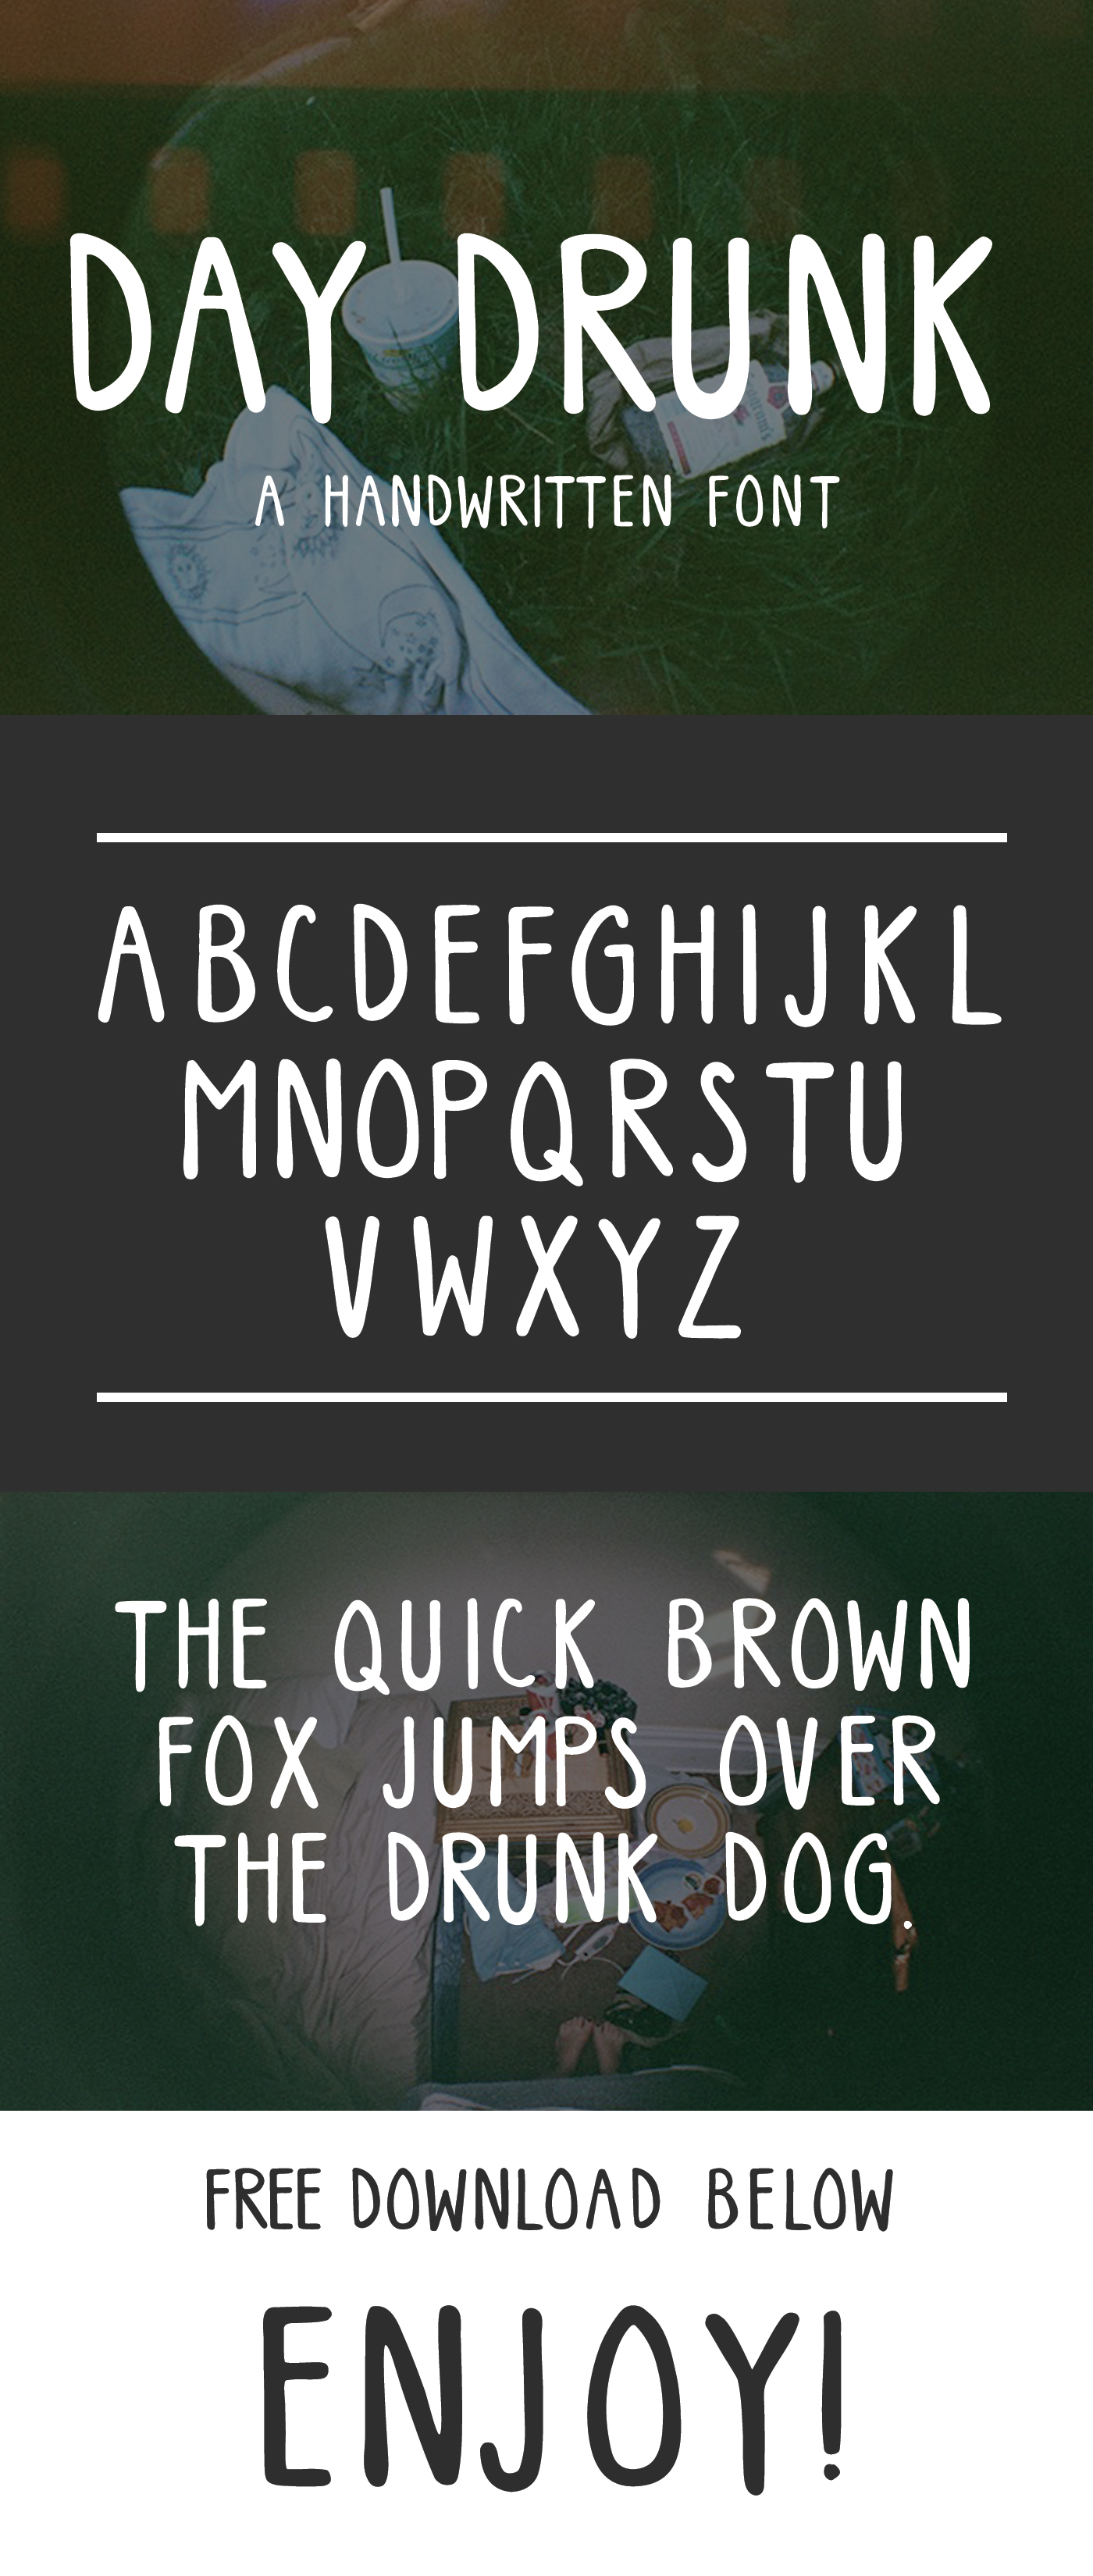 Its An All Caps Font Because Drunk People Especially Day Never Ever Talk Quietly Is Loud In Your Face Wiggly And Fun